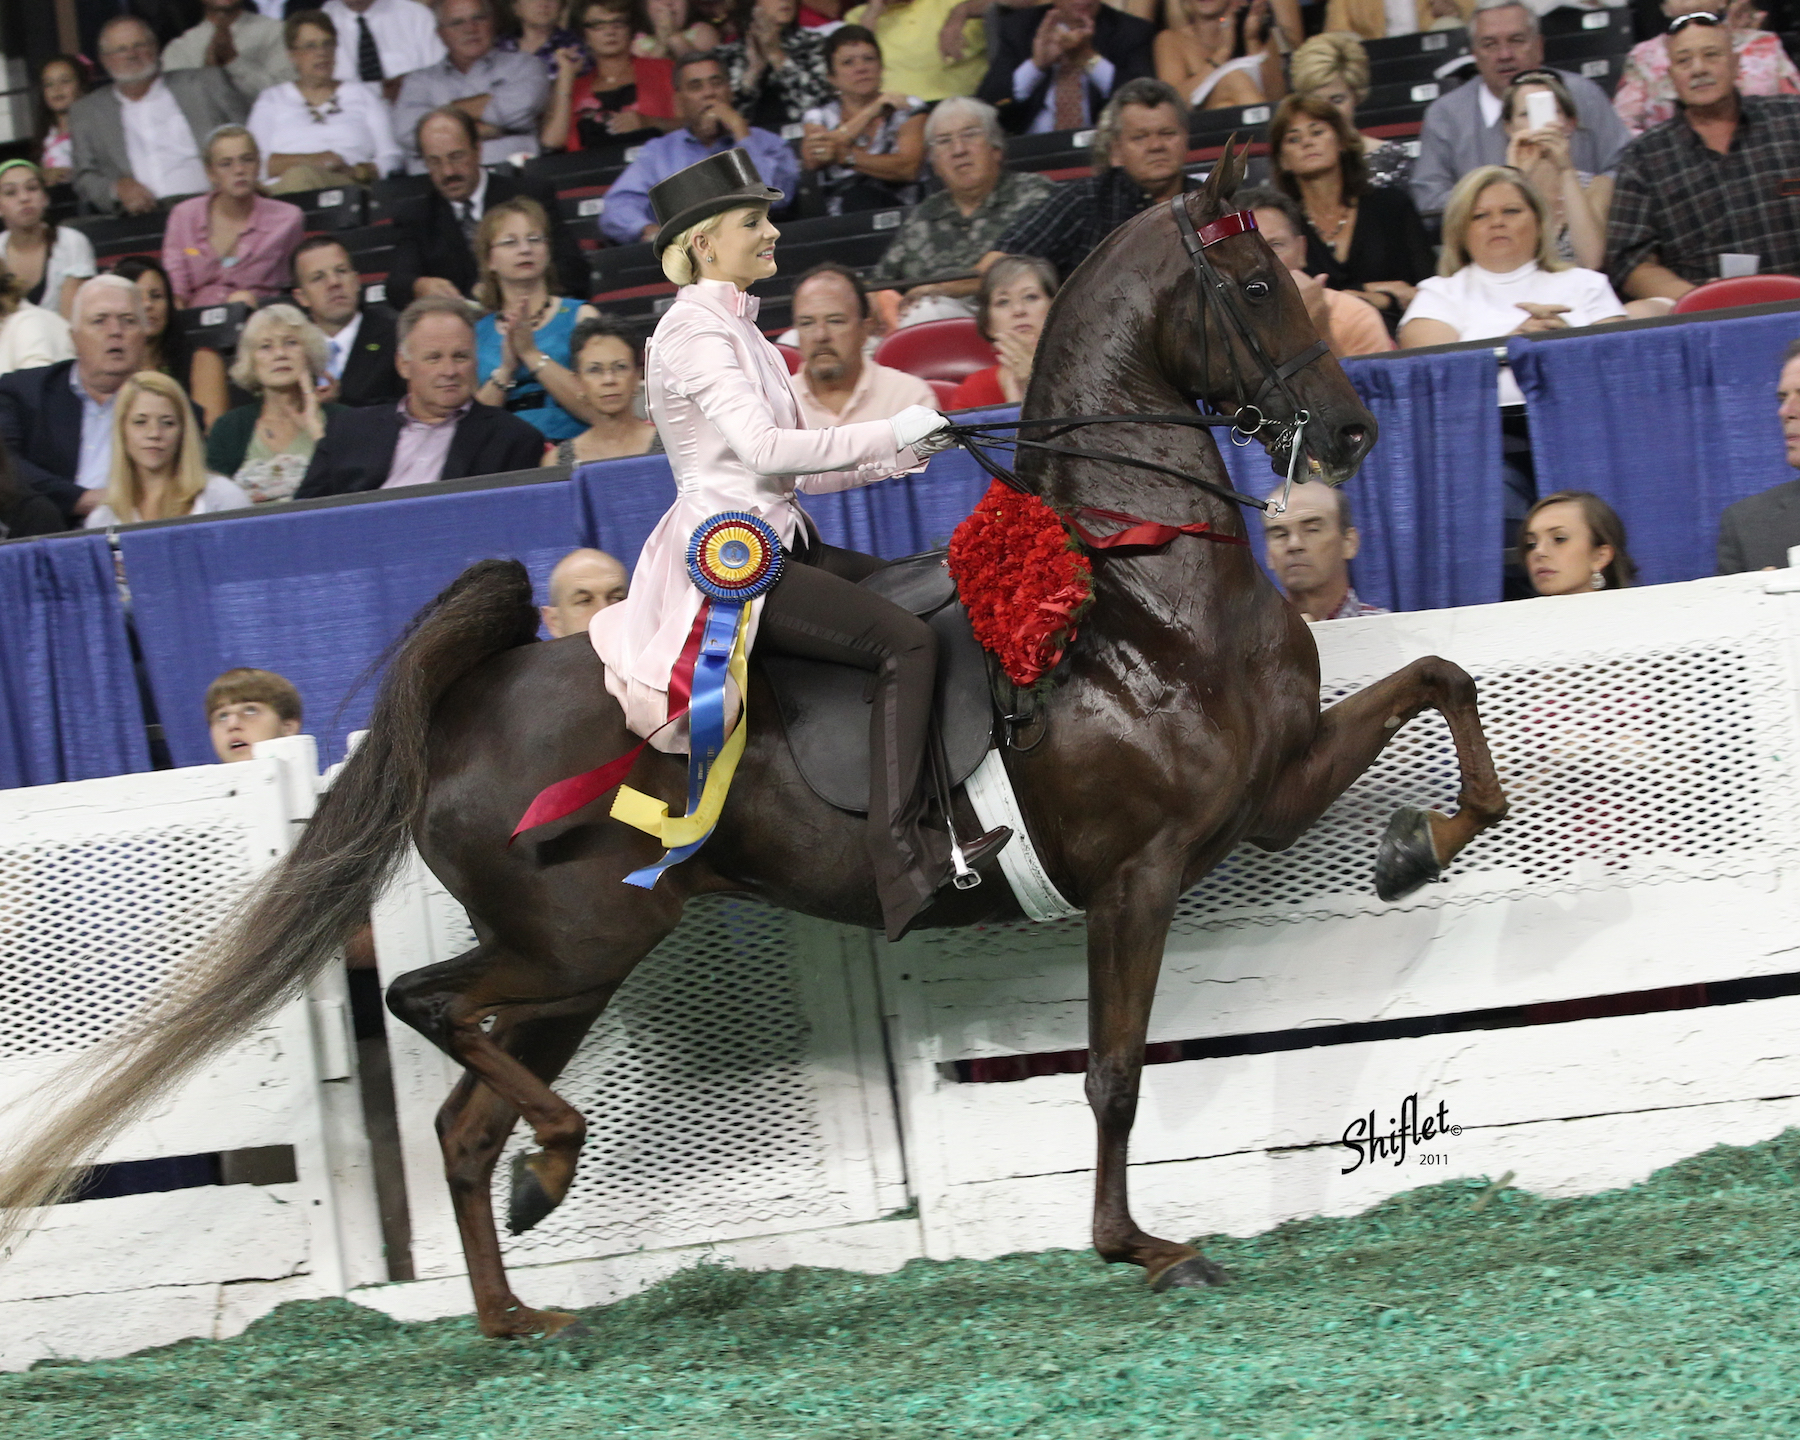 WCC CH With Style and Grace - Sir William Robert x Lady Peridot2014 3 Gaited Ladies Amateur Reserve World Grand Champion2014 3 Gaited Ladies Amateur 15.2 & Under Reserve World Champion2013 3 Gaited Amateur Reserve World Grand Champion2013 3 Gaited Amateur 15.2 & Under World Champion2012 3 Gaited Amateur Reserve World Grand Champion2011 3 Gaited Amateur World Grand Champion2011 3 Gaited Amateur 15.2 & Under World Champion2010 3 Gaited Amateur World Grand Champion2010 3 Gaited Amateur 15.2 & Under World Champion2009 Fine Harness Junior Reserve World Grand Champion2009 Fine Harness Junior Mare World Champion